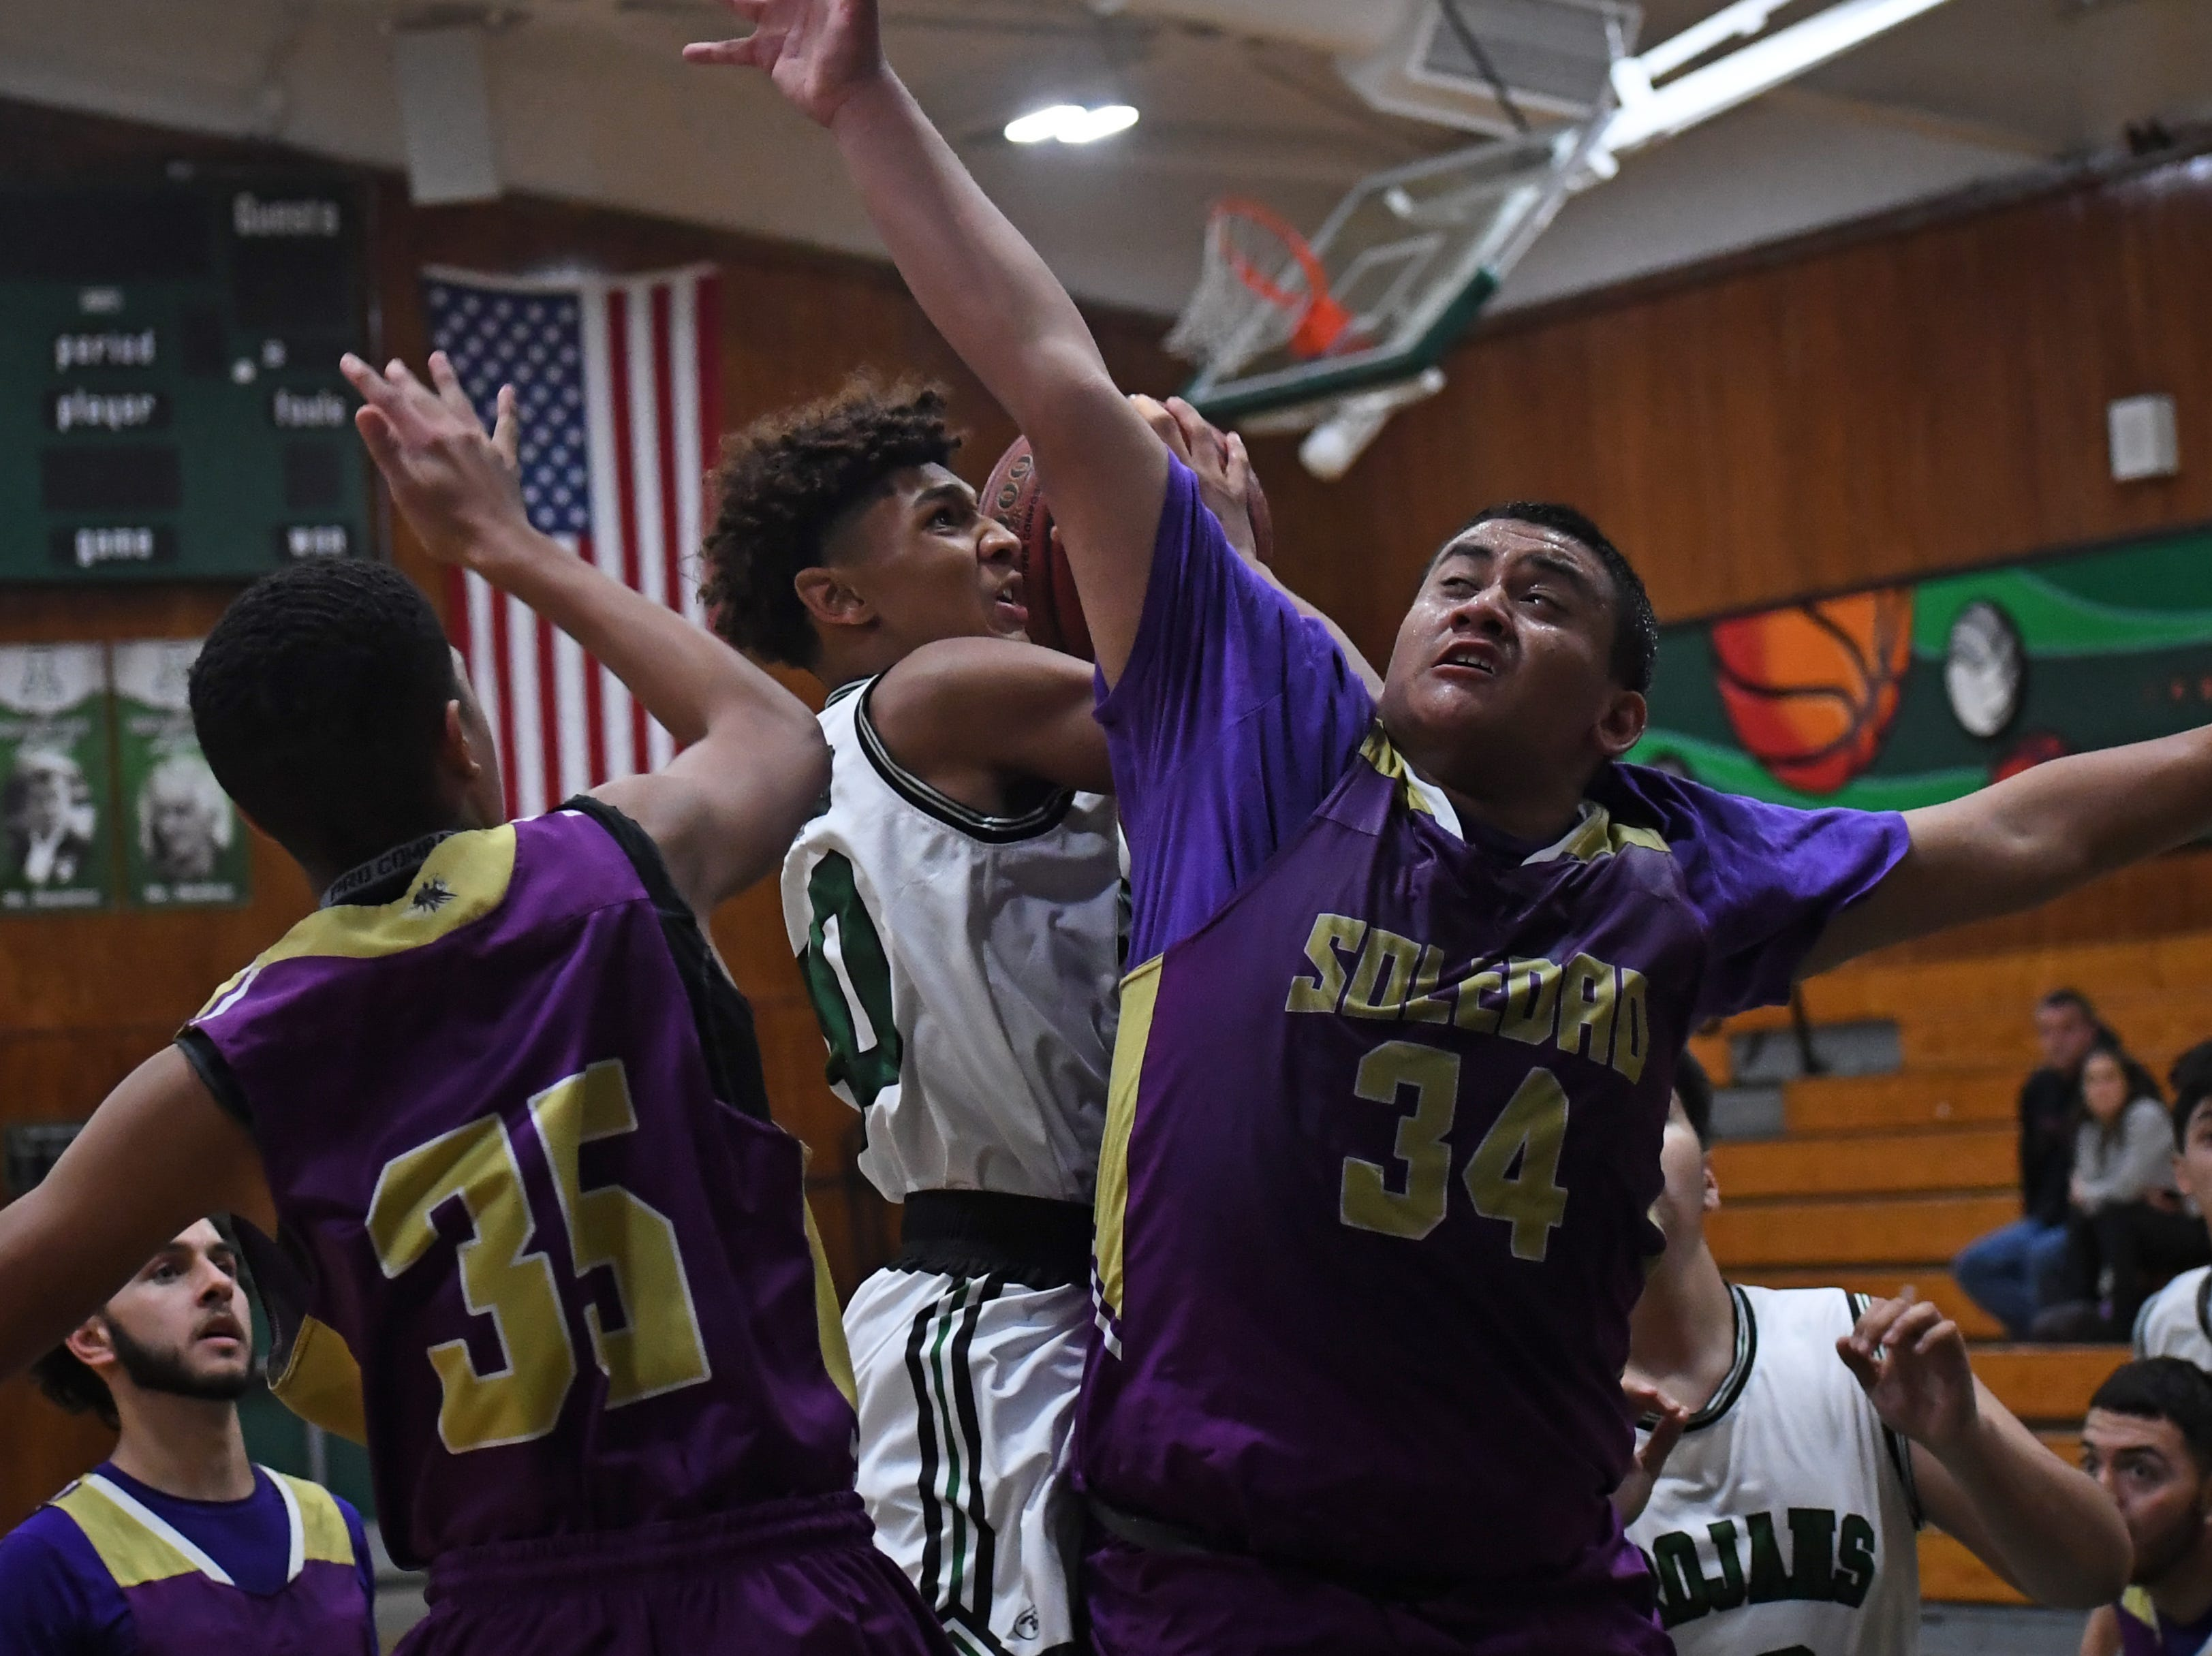 Alisal guard Izahias Carrillo (20) puts up a shot while absorbing contact.